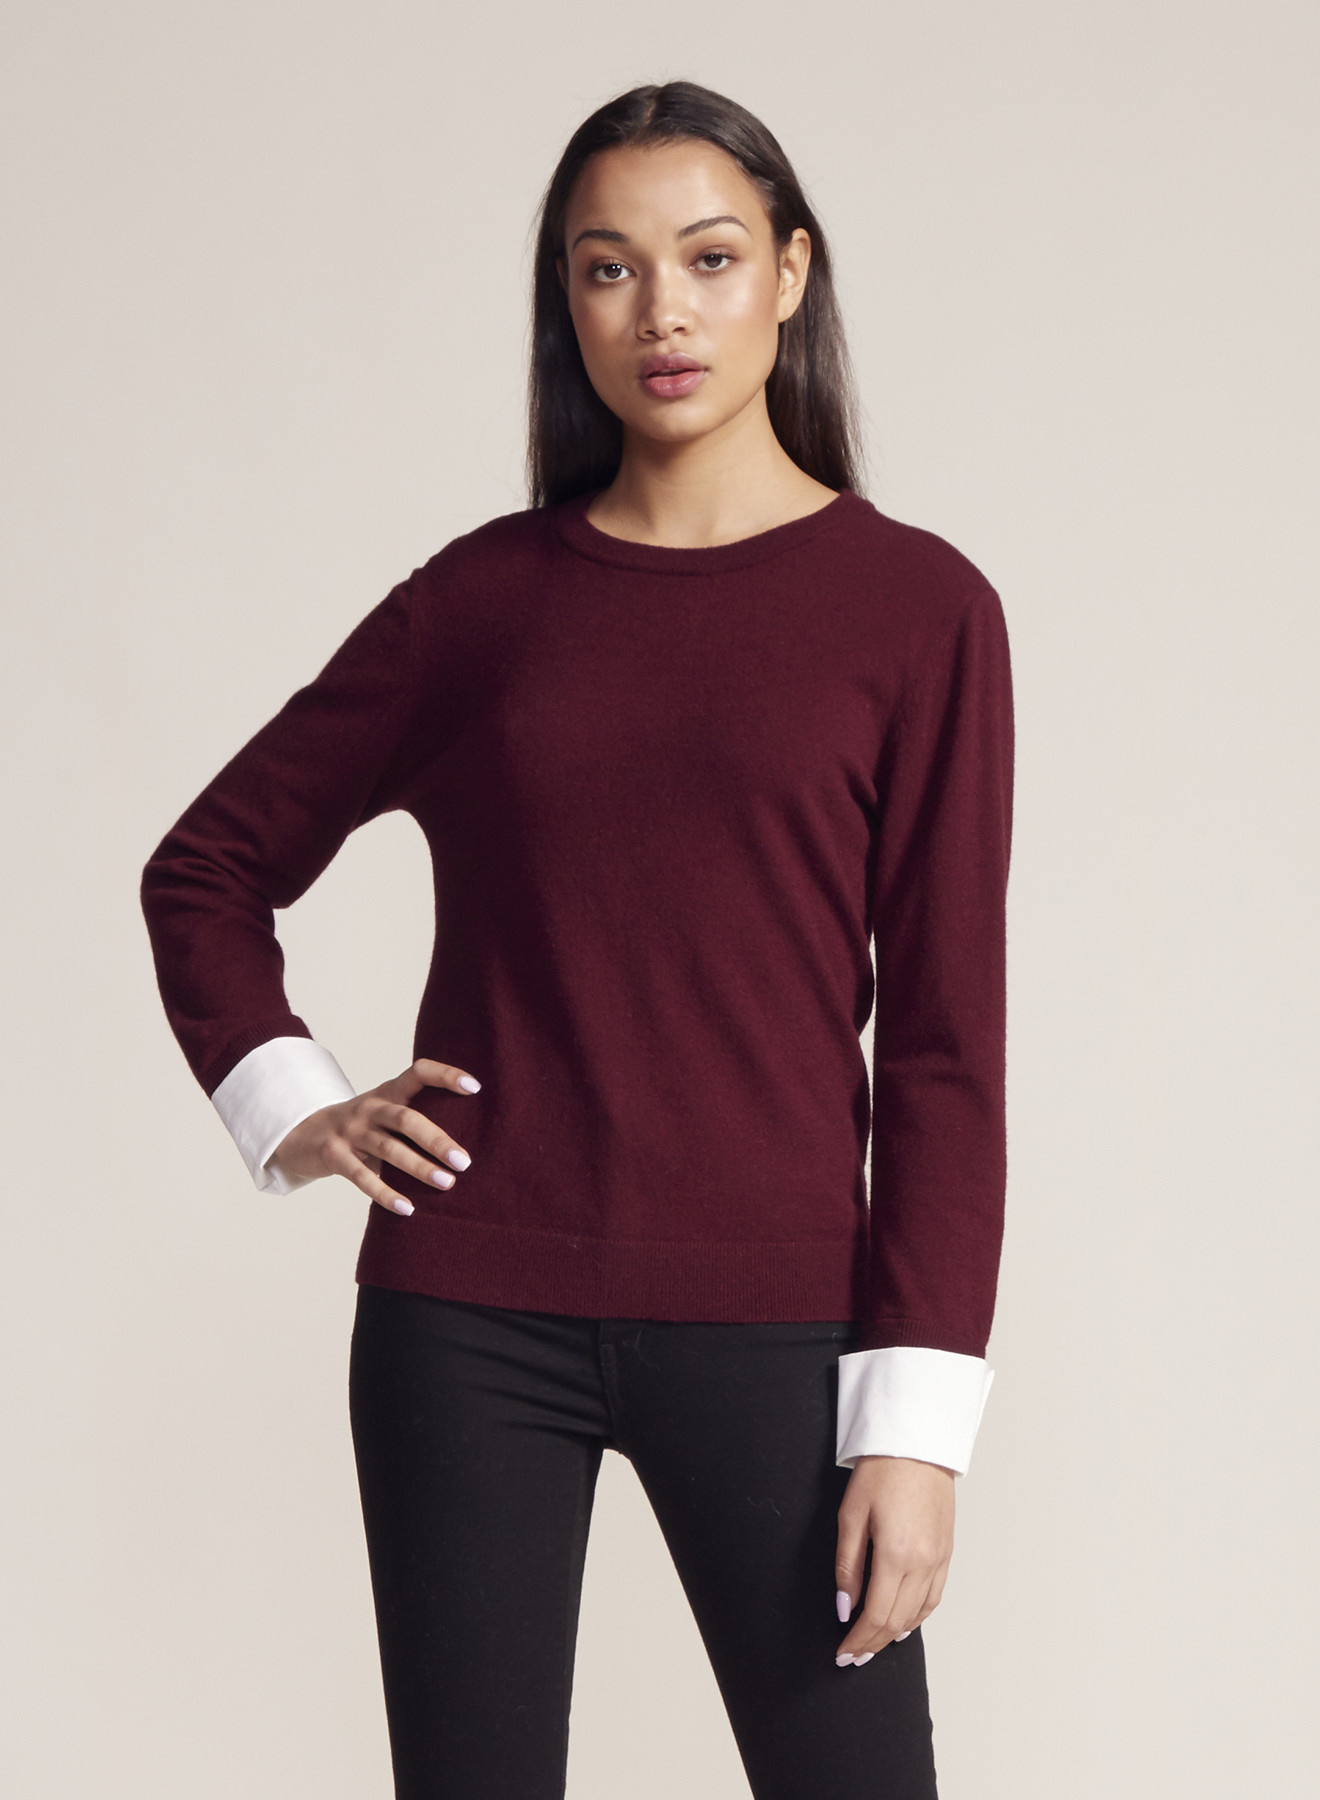 Crew Neck Sweater with Cuffs